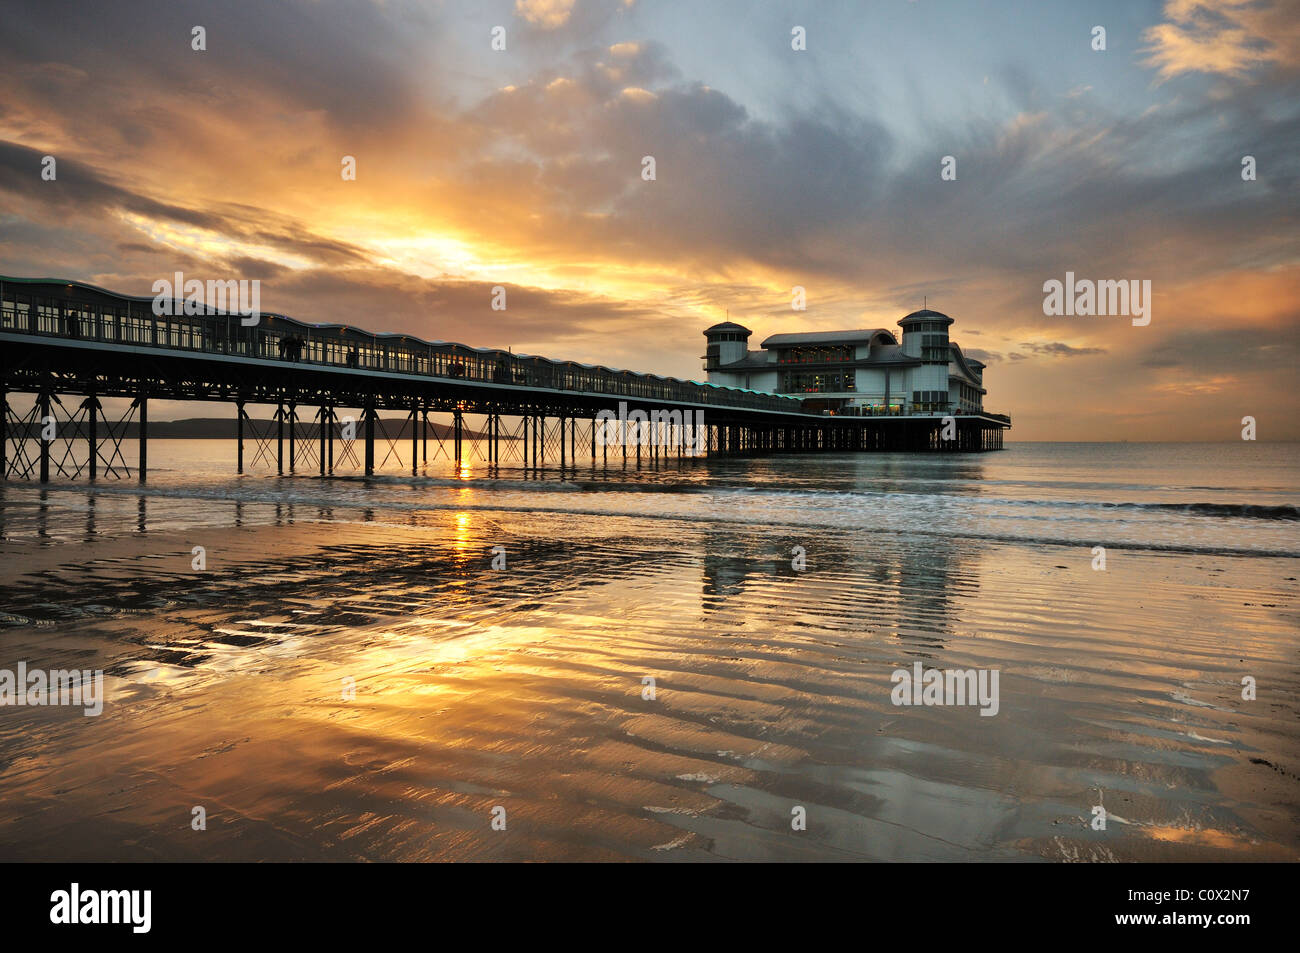 A sunset at the new pier in Weston Super Mare, Somerset. - Stock Image